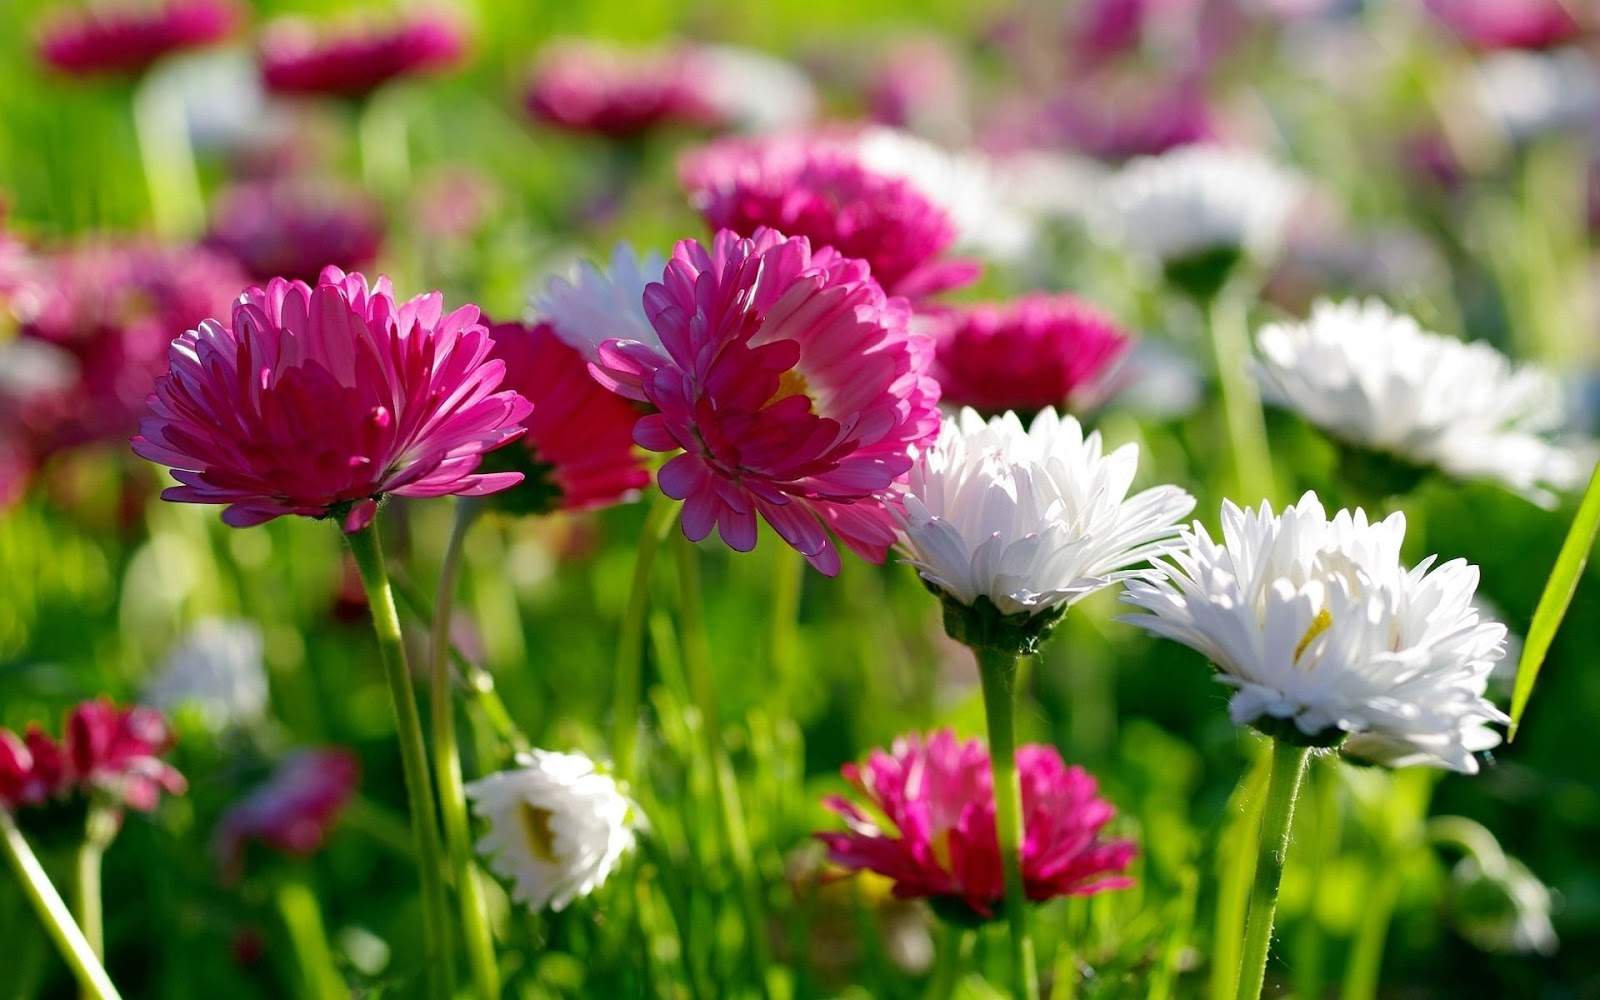 HD WALLPAPERS FOR DESKTOP spring flowers 1600x1000